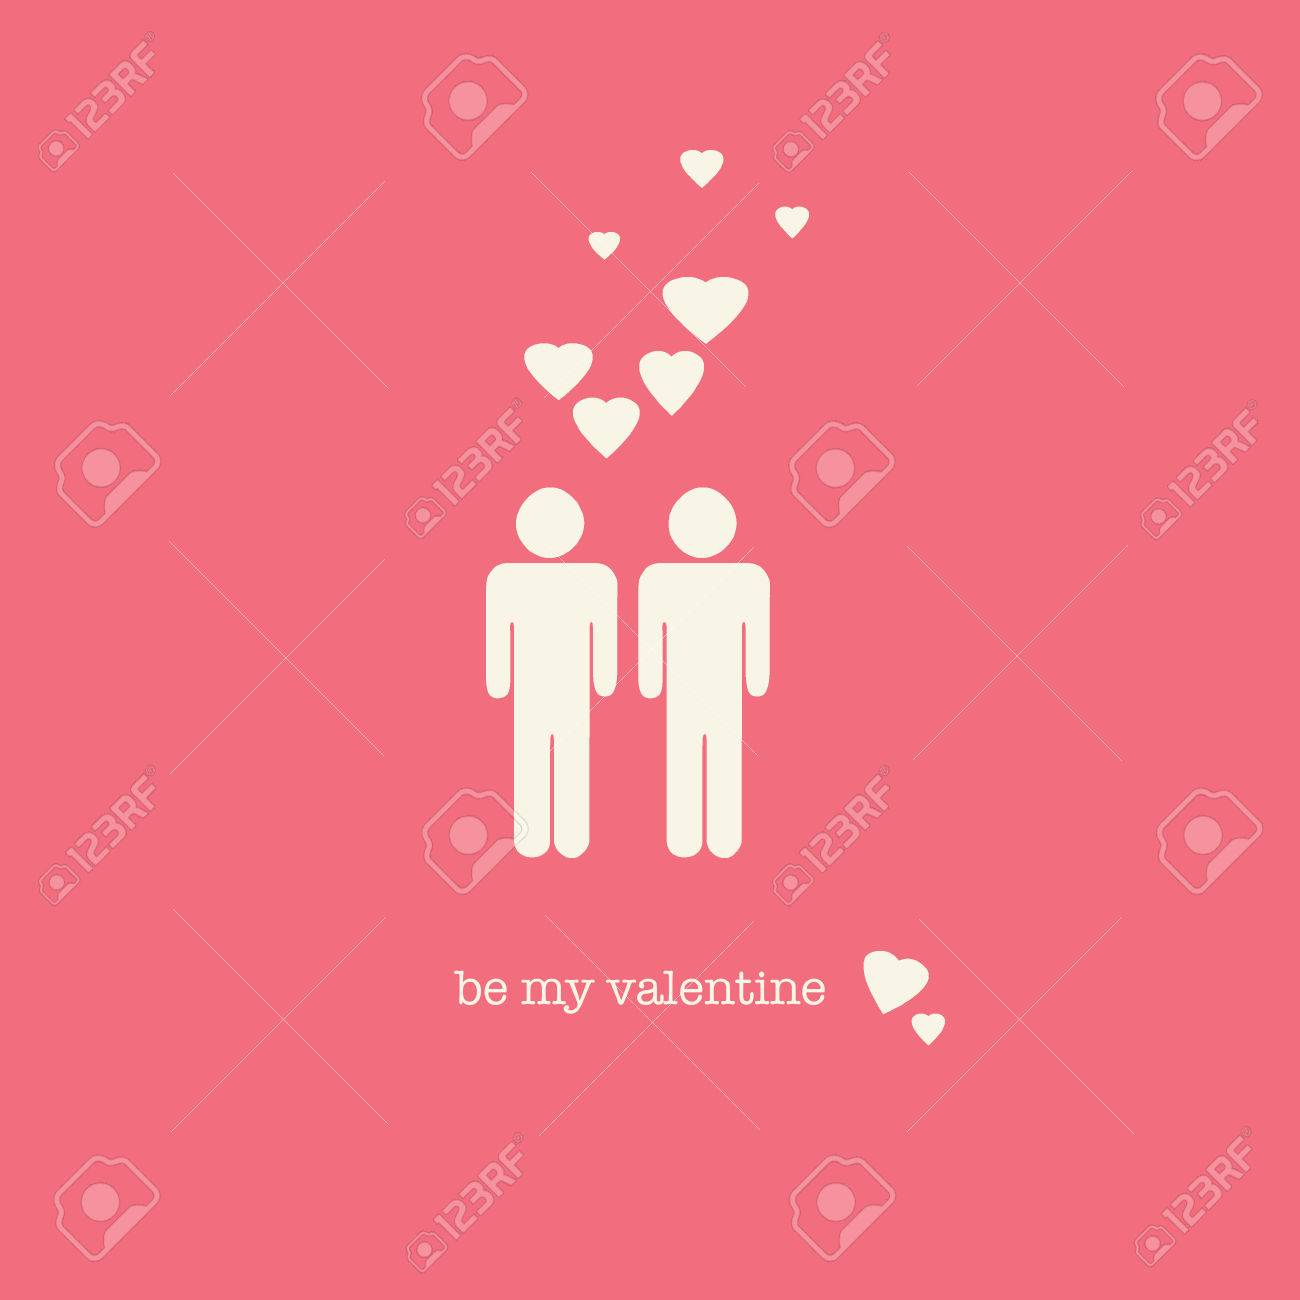 A Sweet Valentines Day Card With A Gay Couple Figures And Hearts – Gay Valentines Card